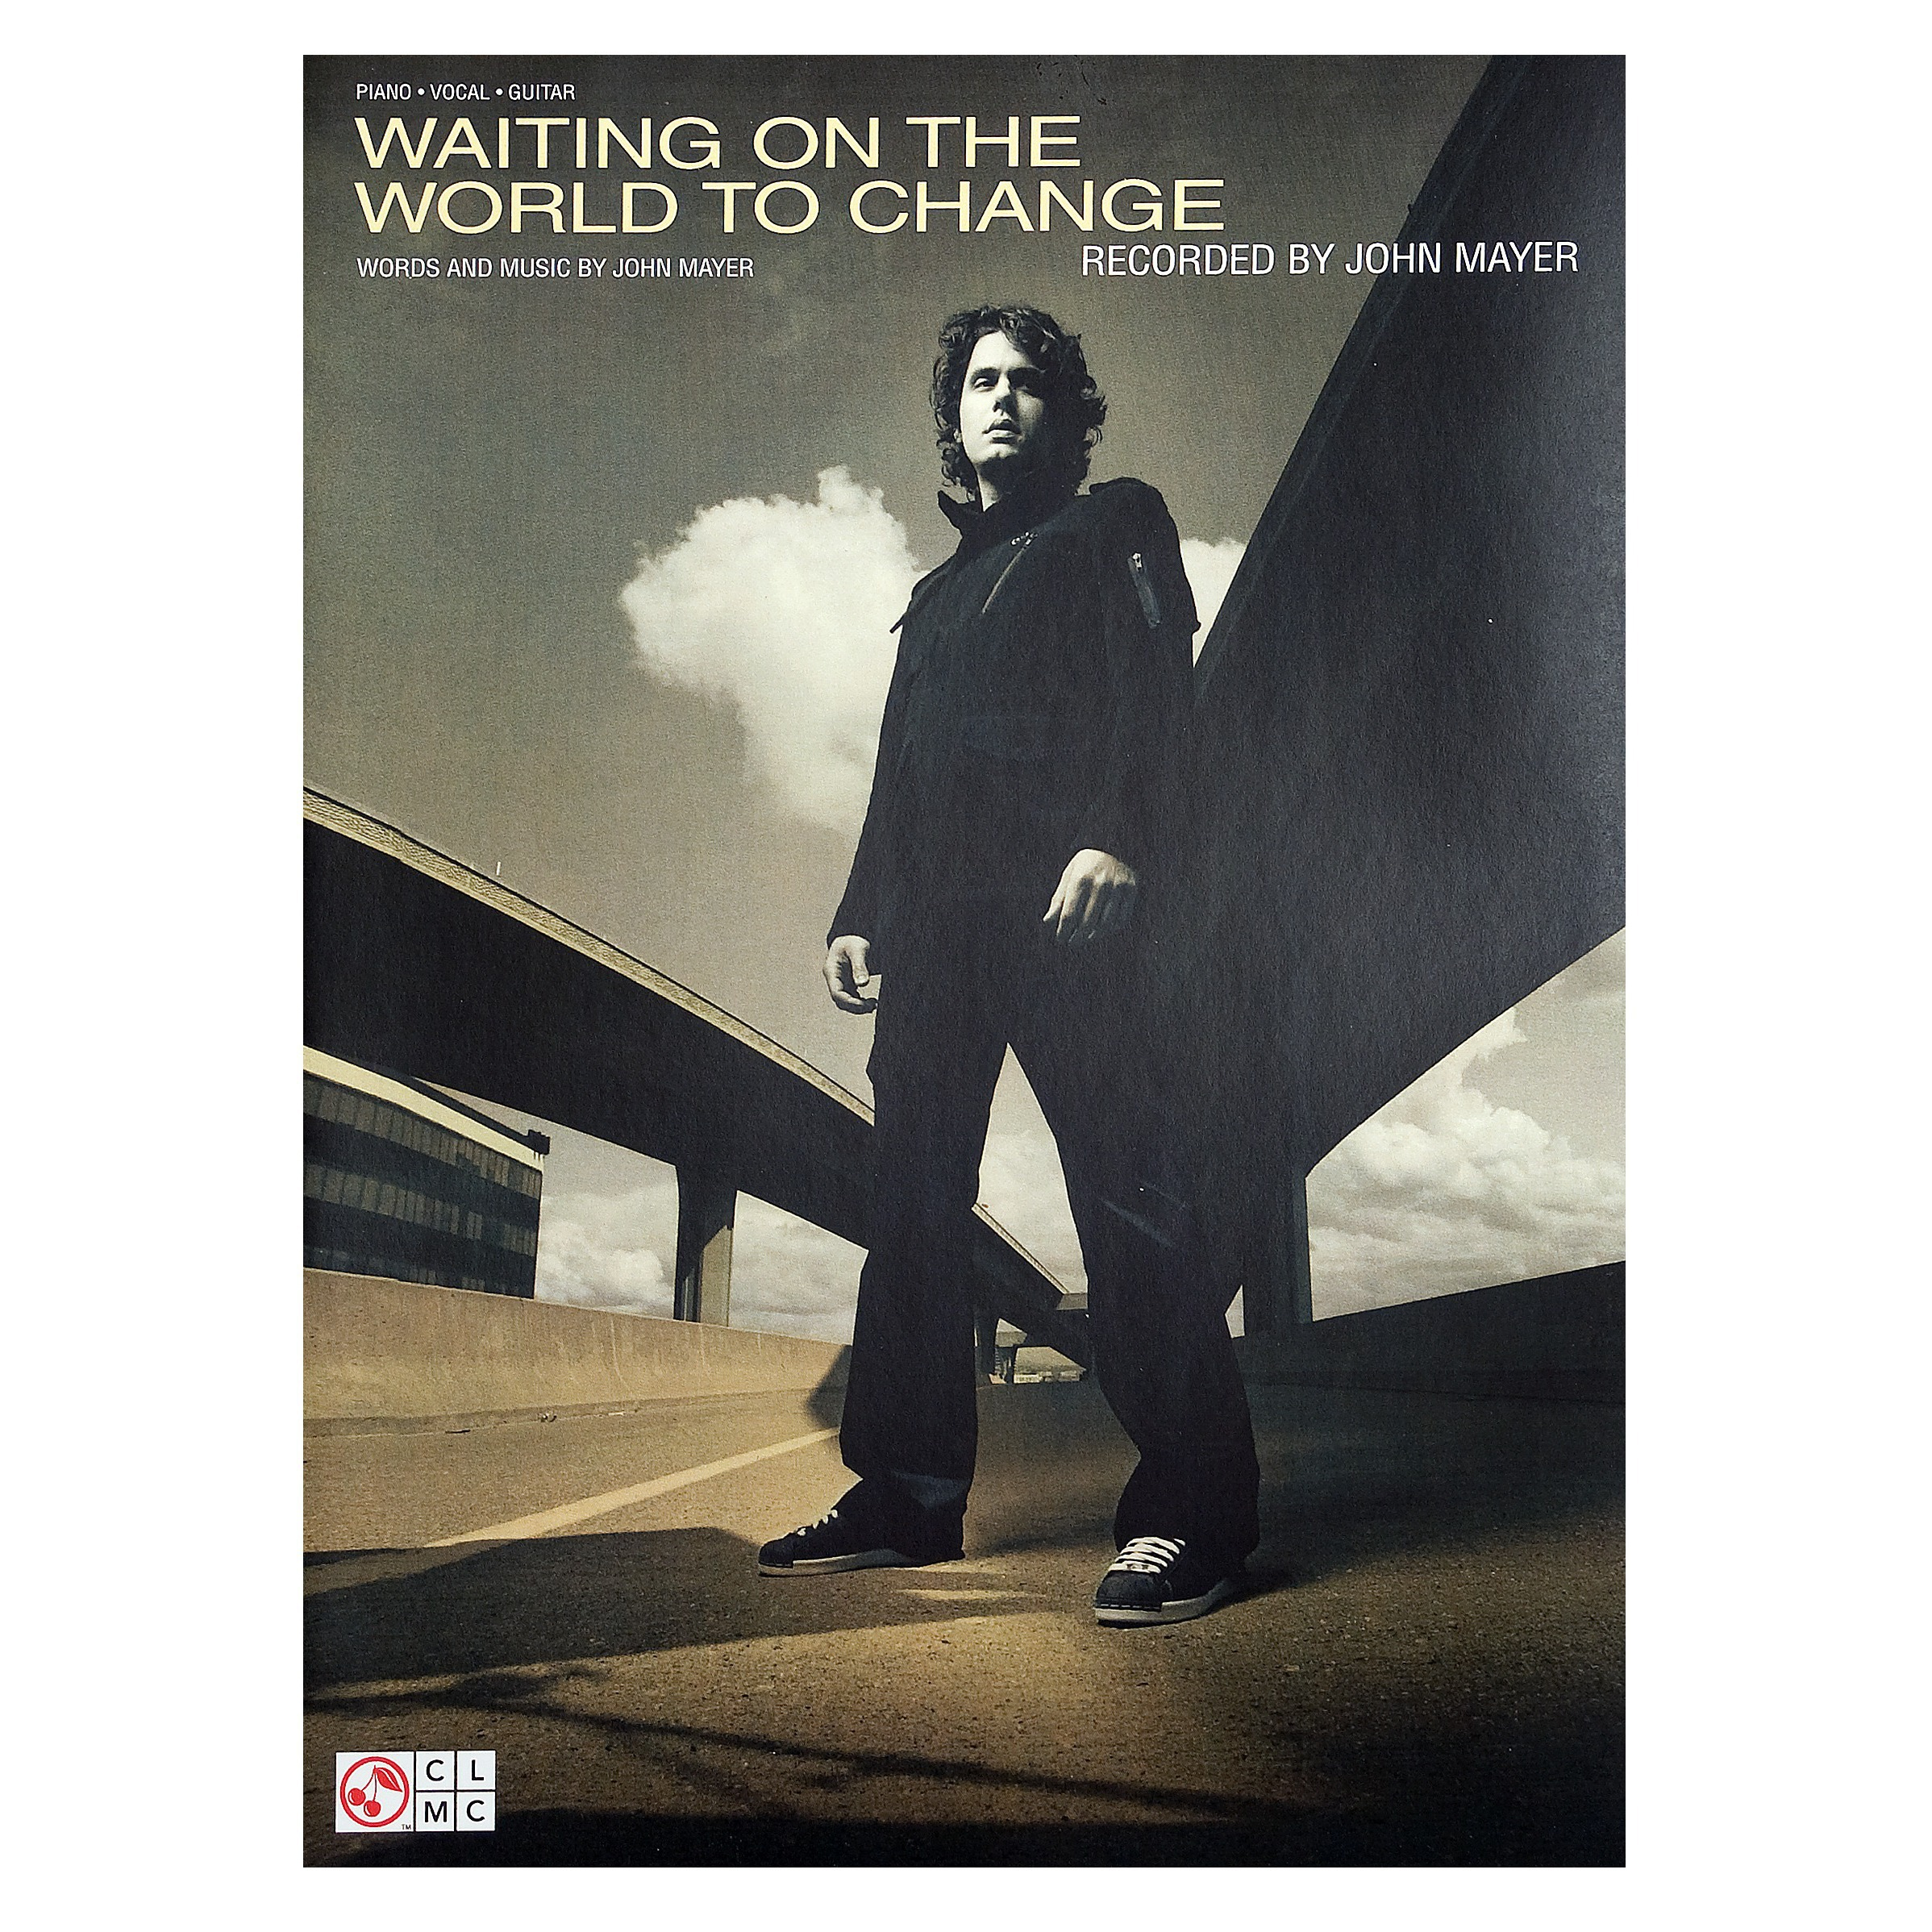 waiting on the world to change Find album reviews, stream songs, credits and award information for waiting on the world to change - john mayer on allmusic - 2006.